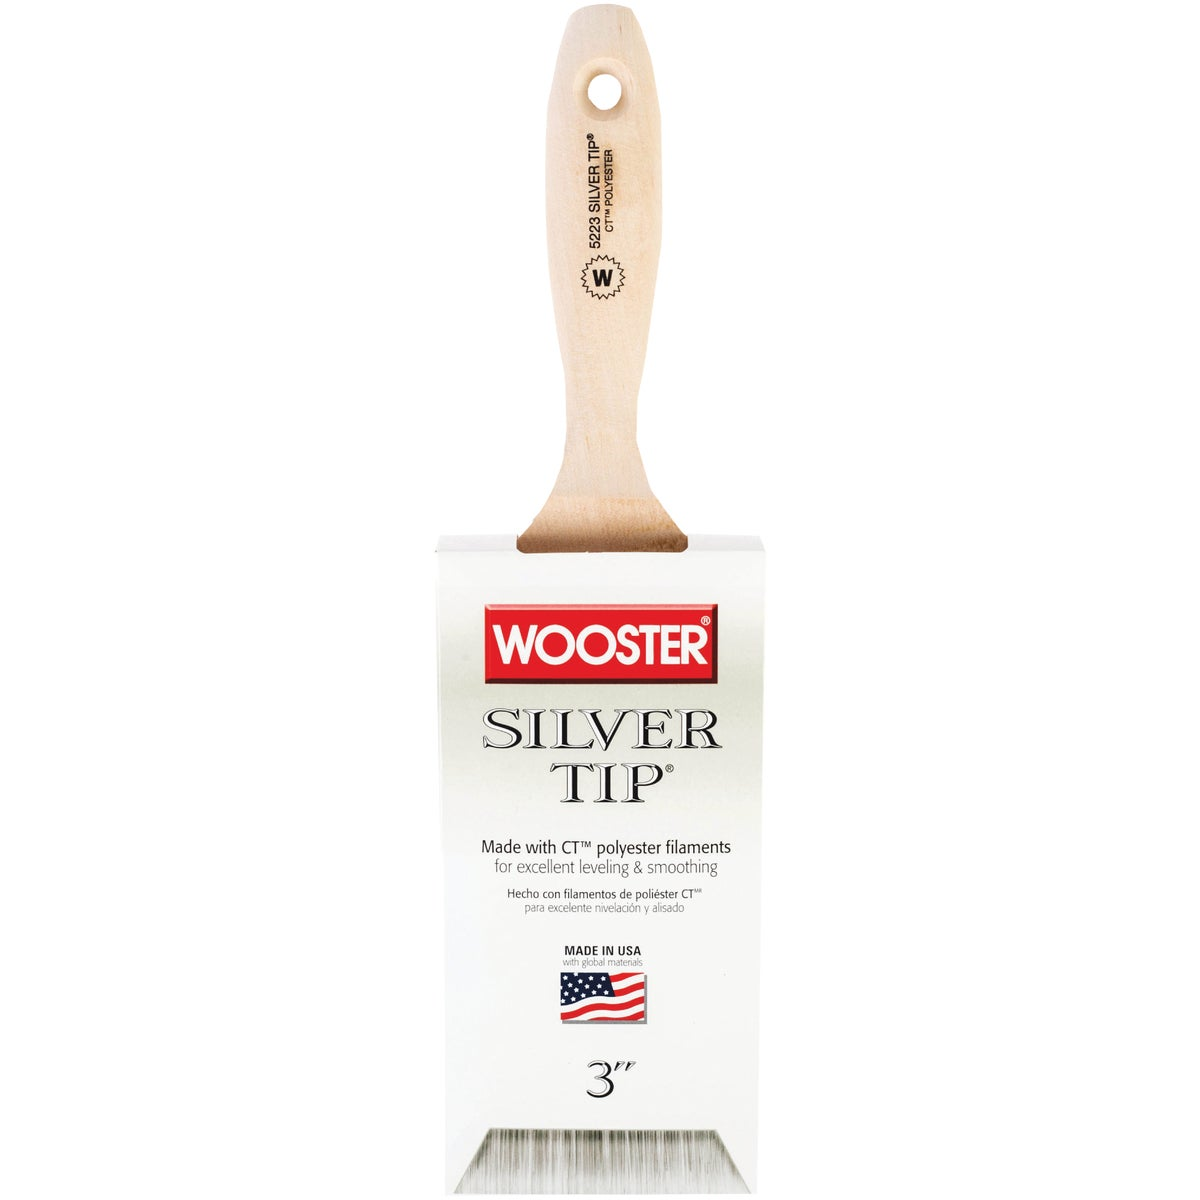 "3"" SILVER TIP WALL BRUSH - 5223-3 by Wooster Brush Co"